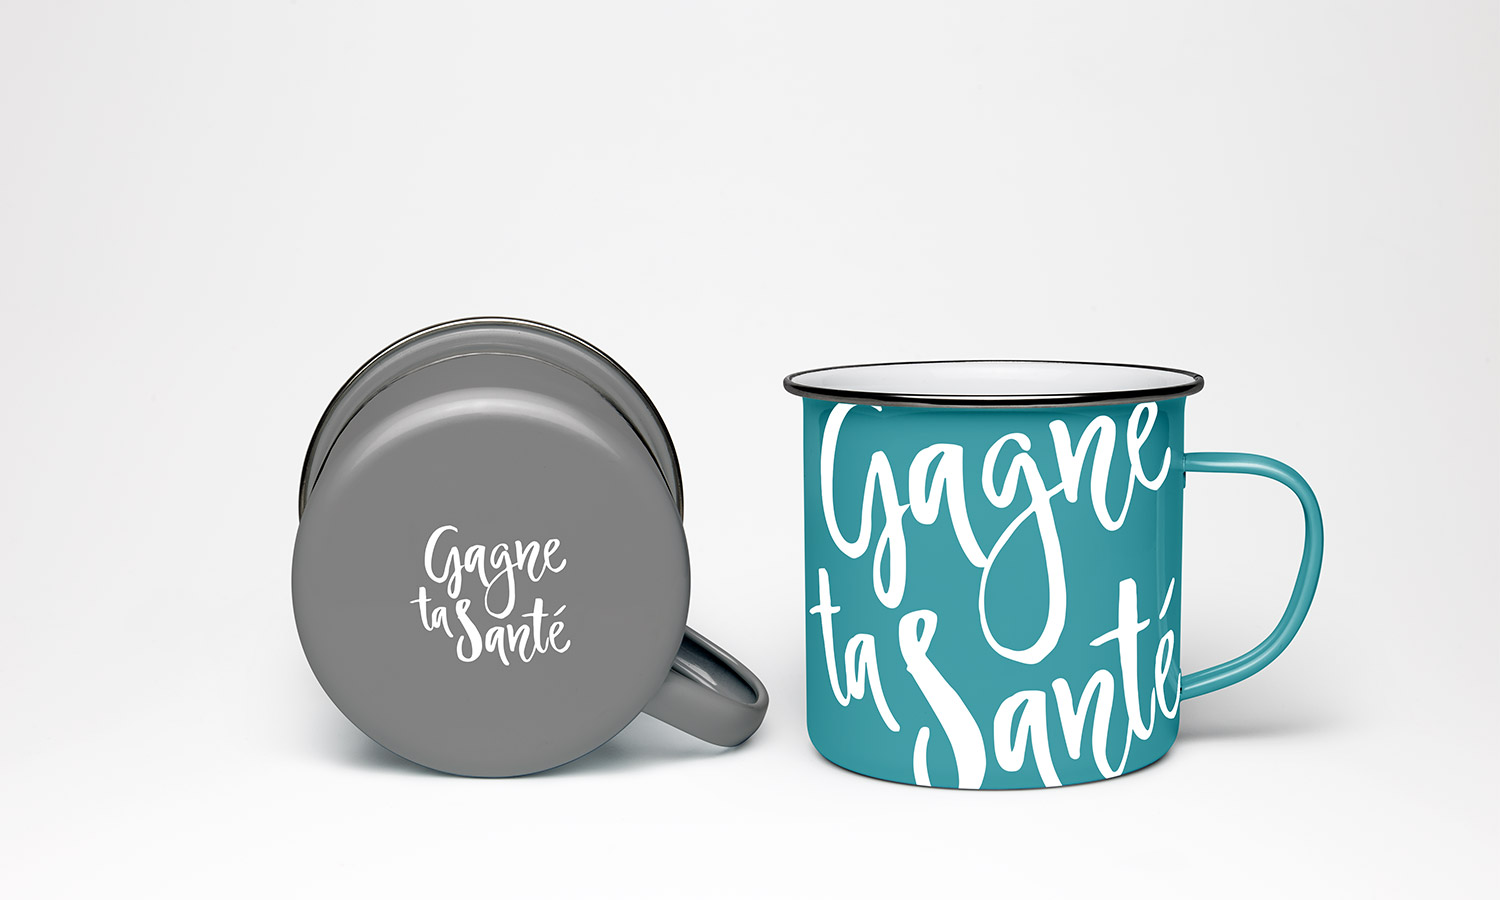 Tasse Design Tasse Design Tasse Design With Tasse Design Awesome Let